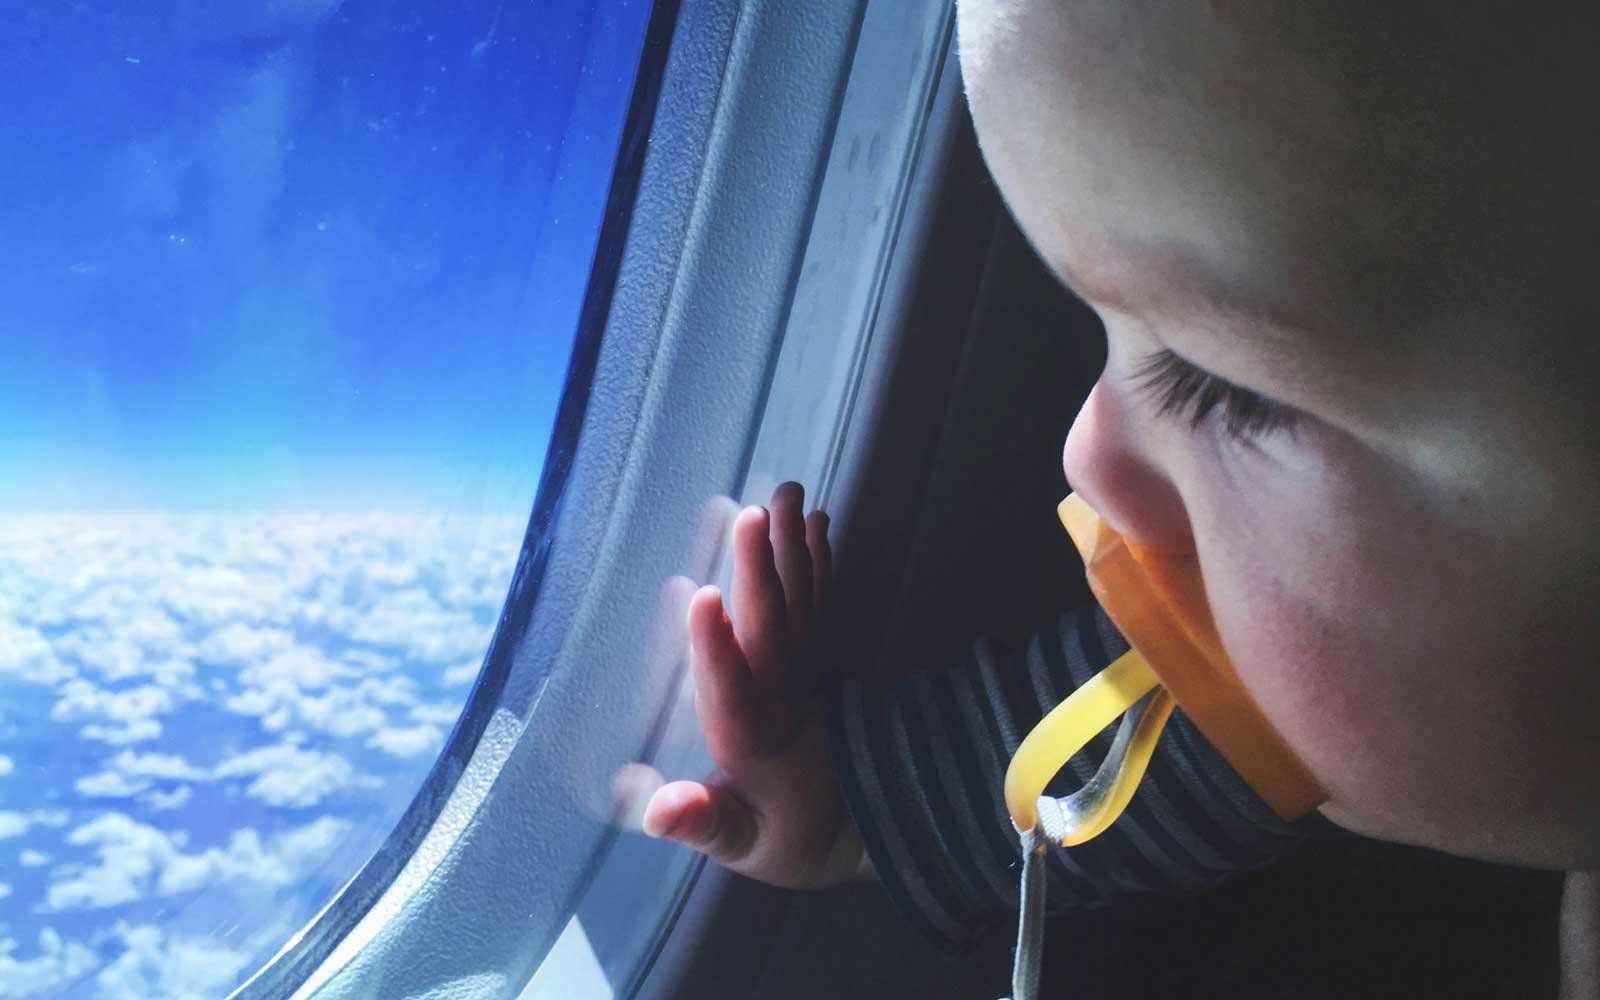 How To Avoid Sitting Next To A Baby On An Airplane